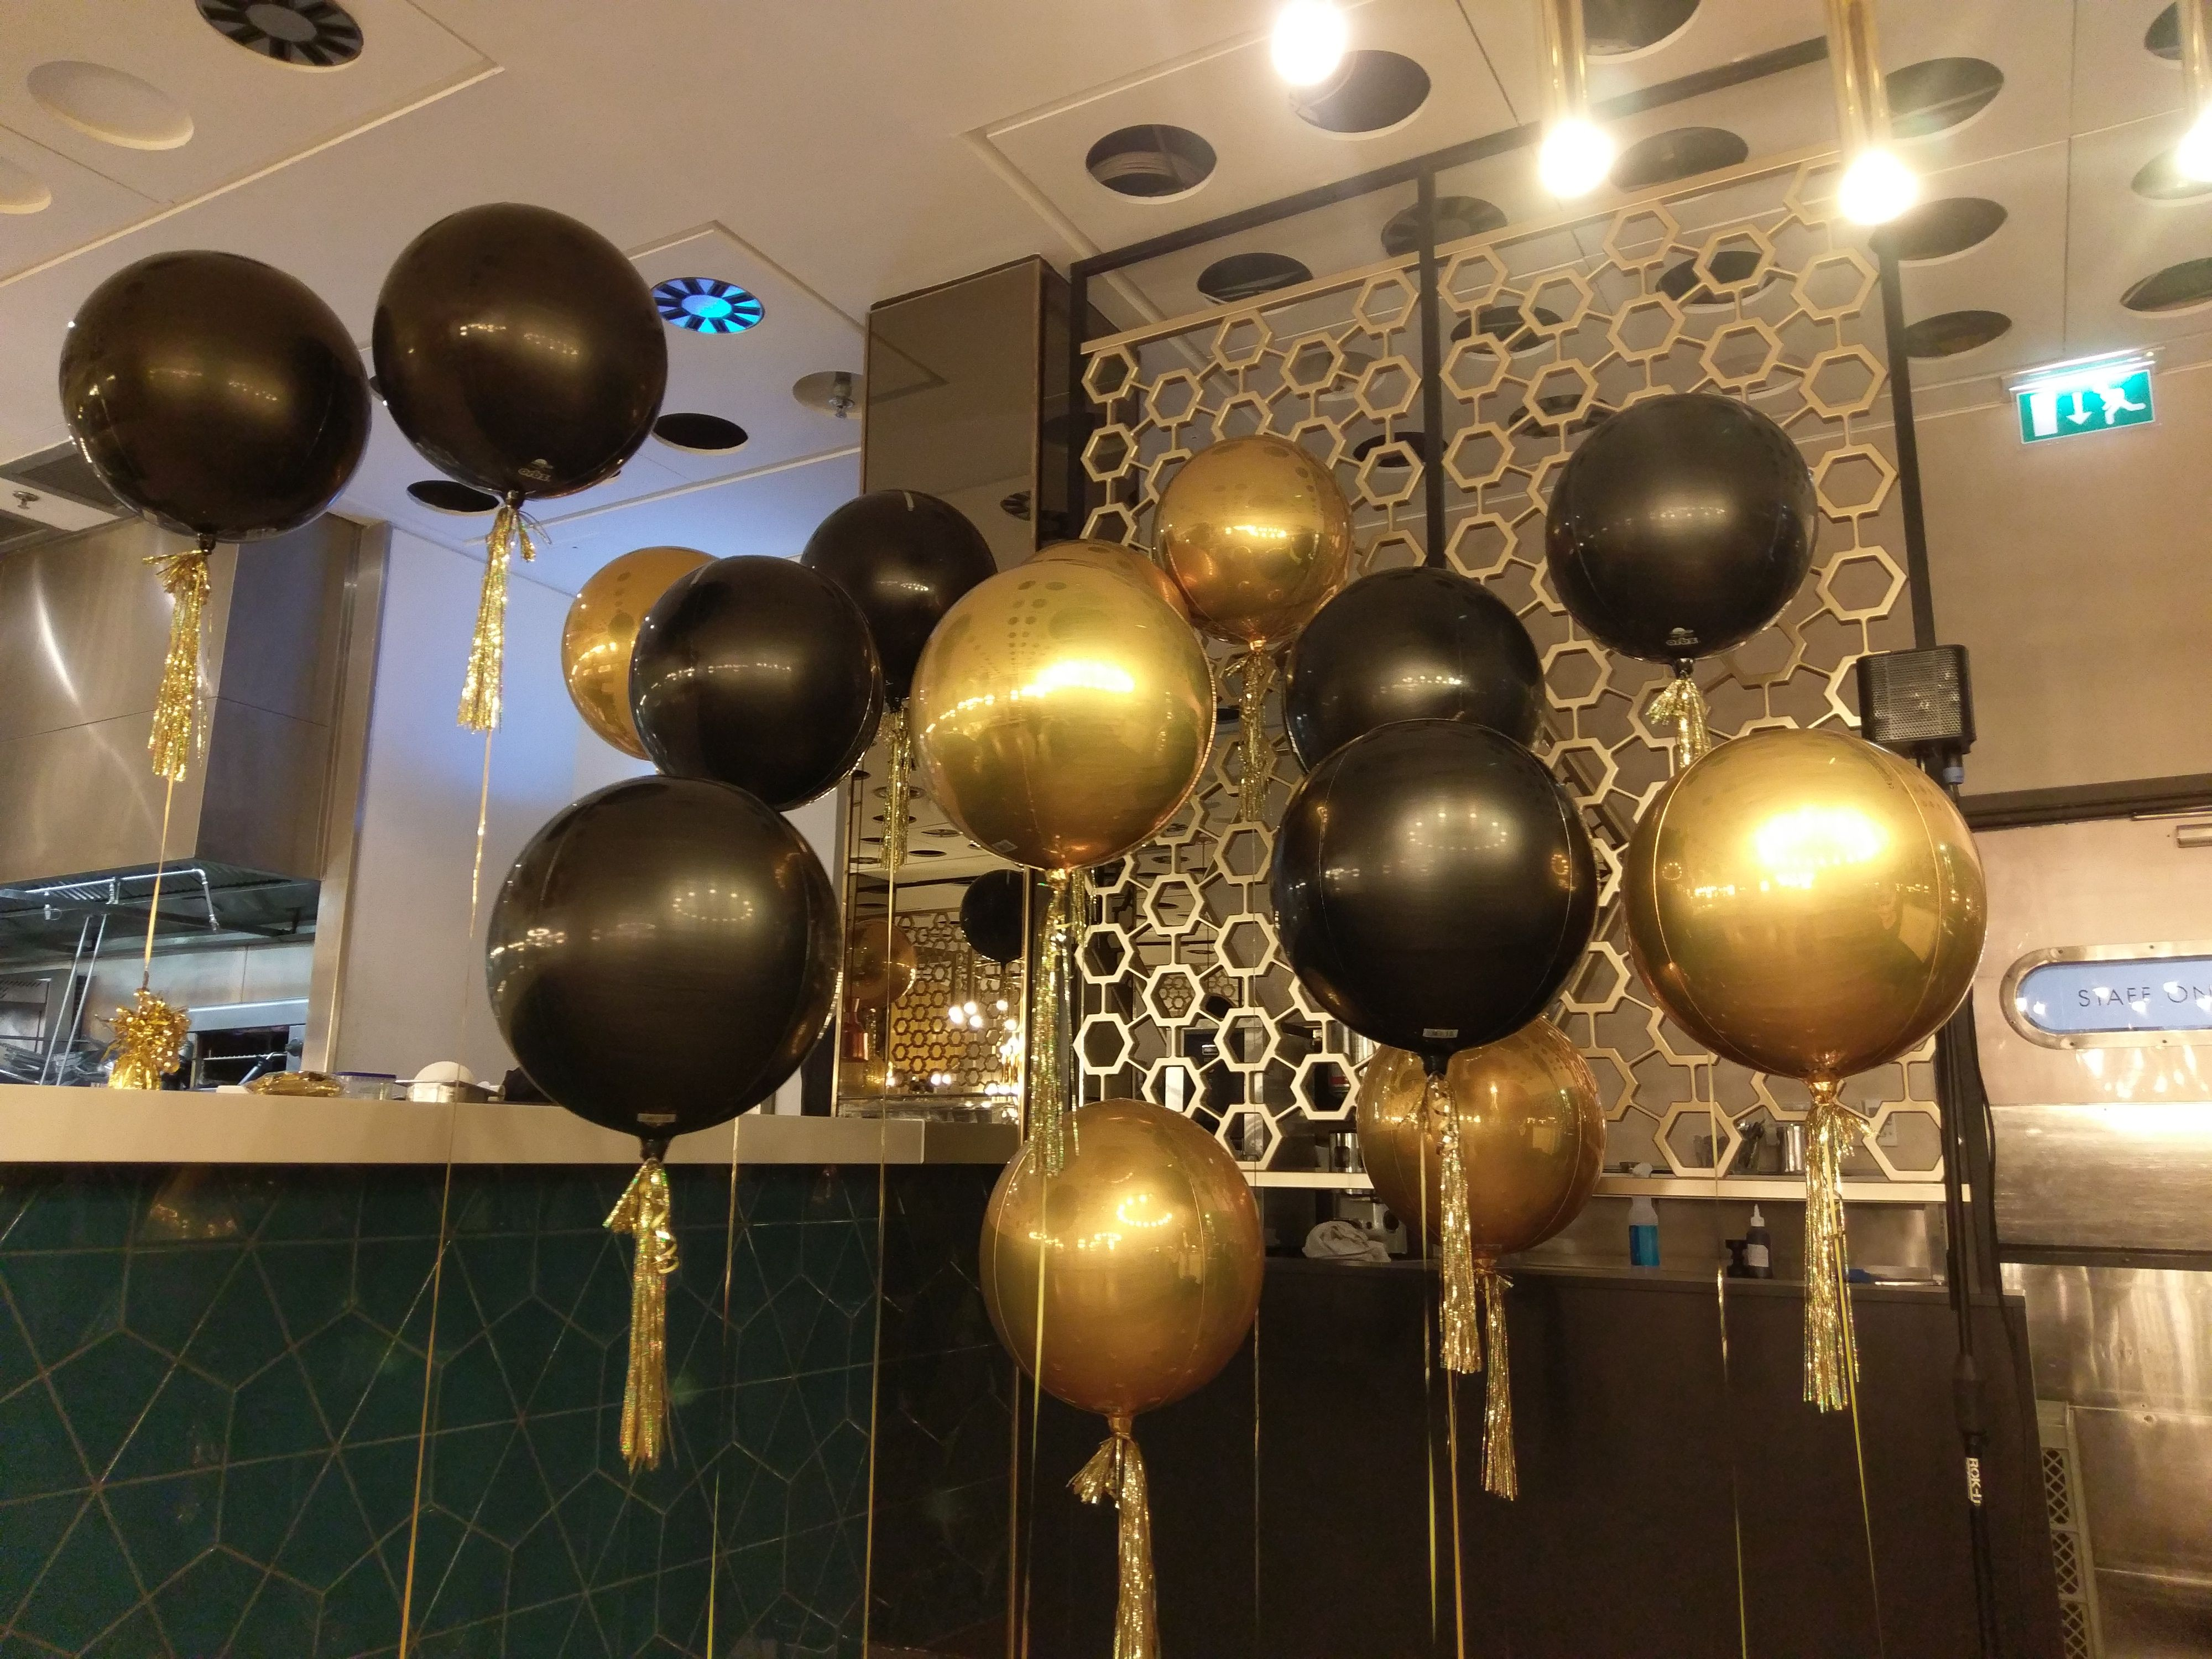 Solid Colour Ball Balloons Black Gold With Tassles Balloons